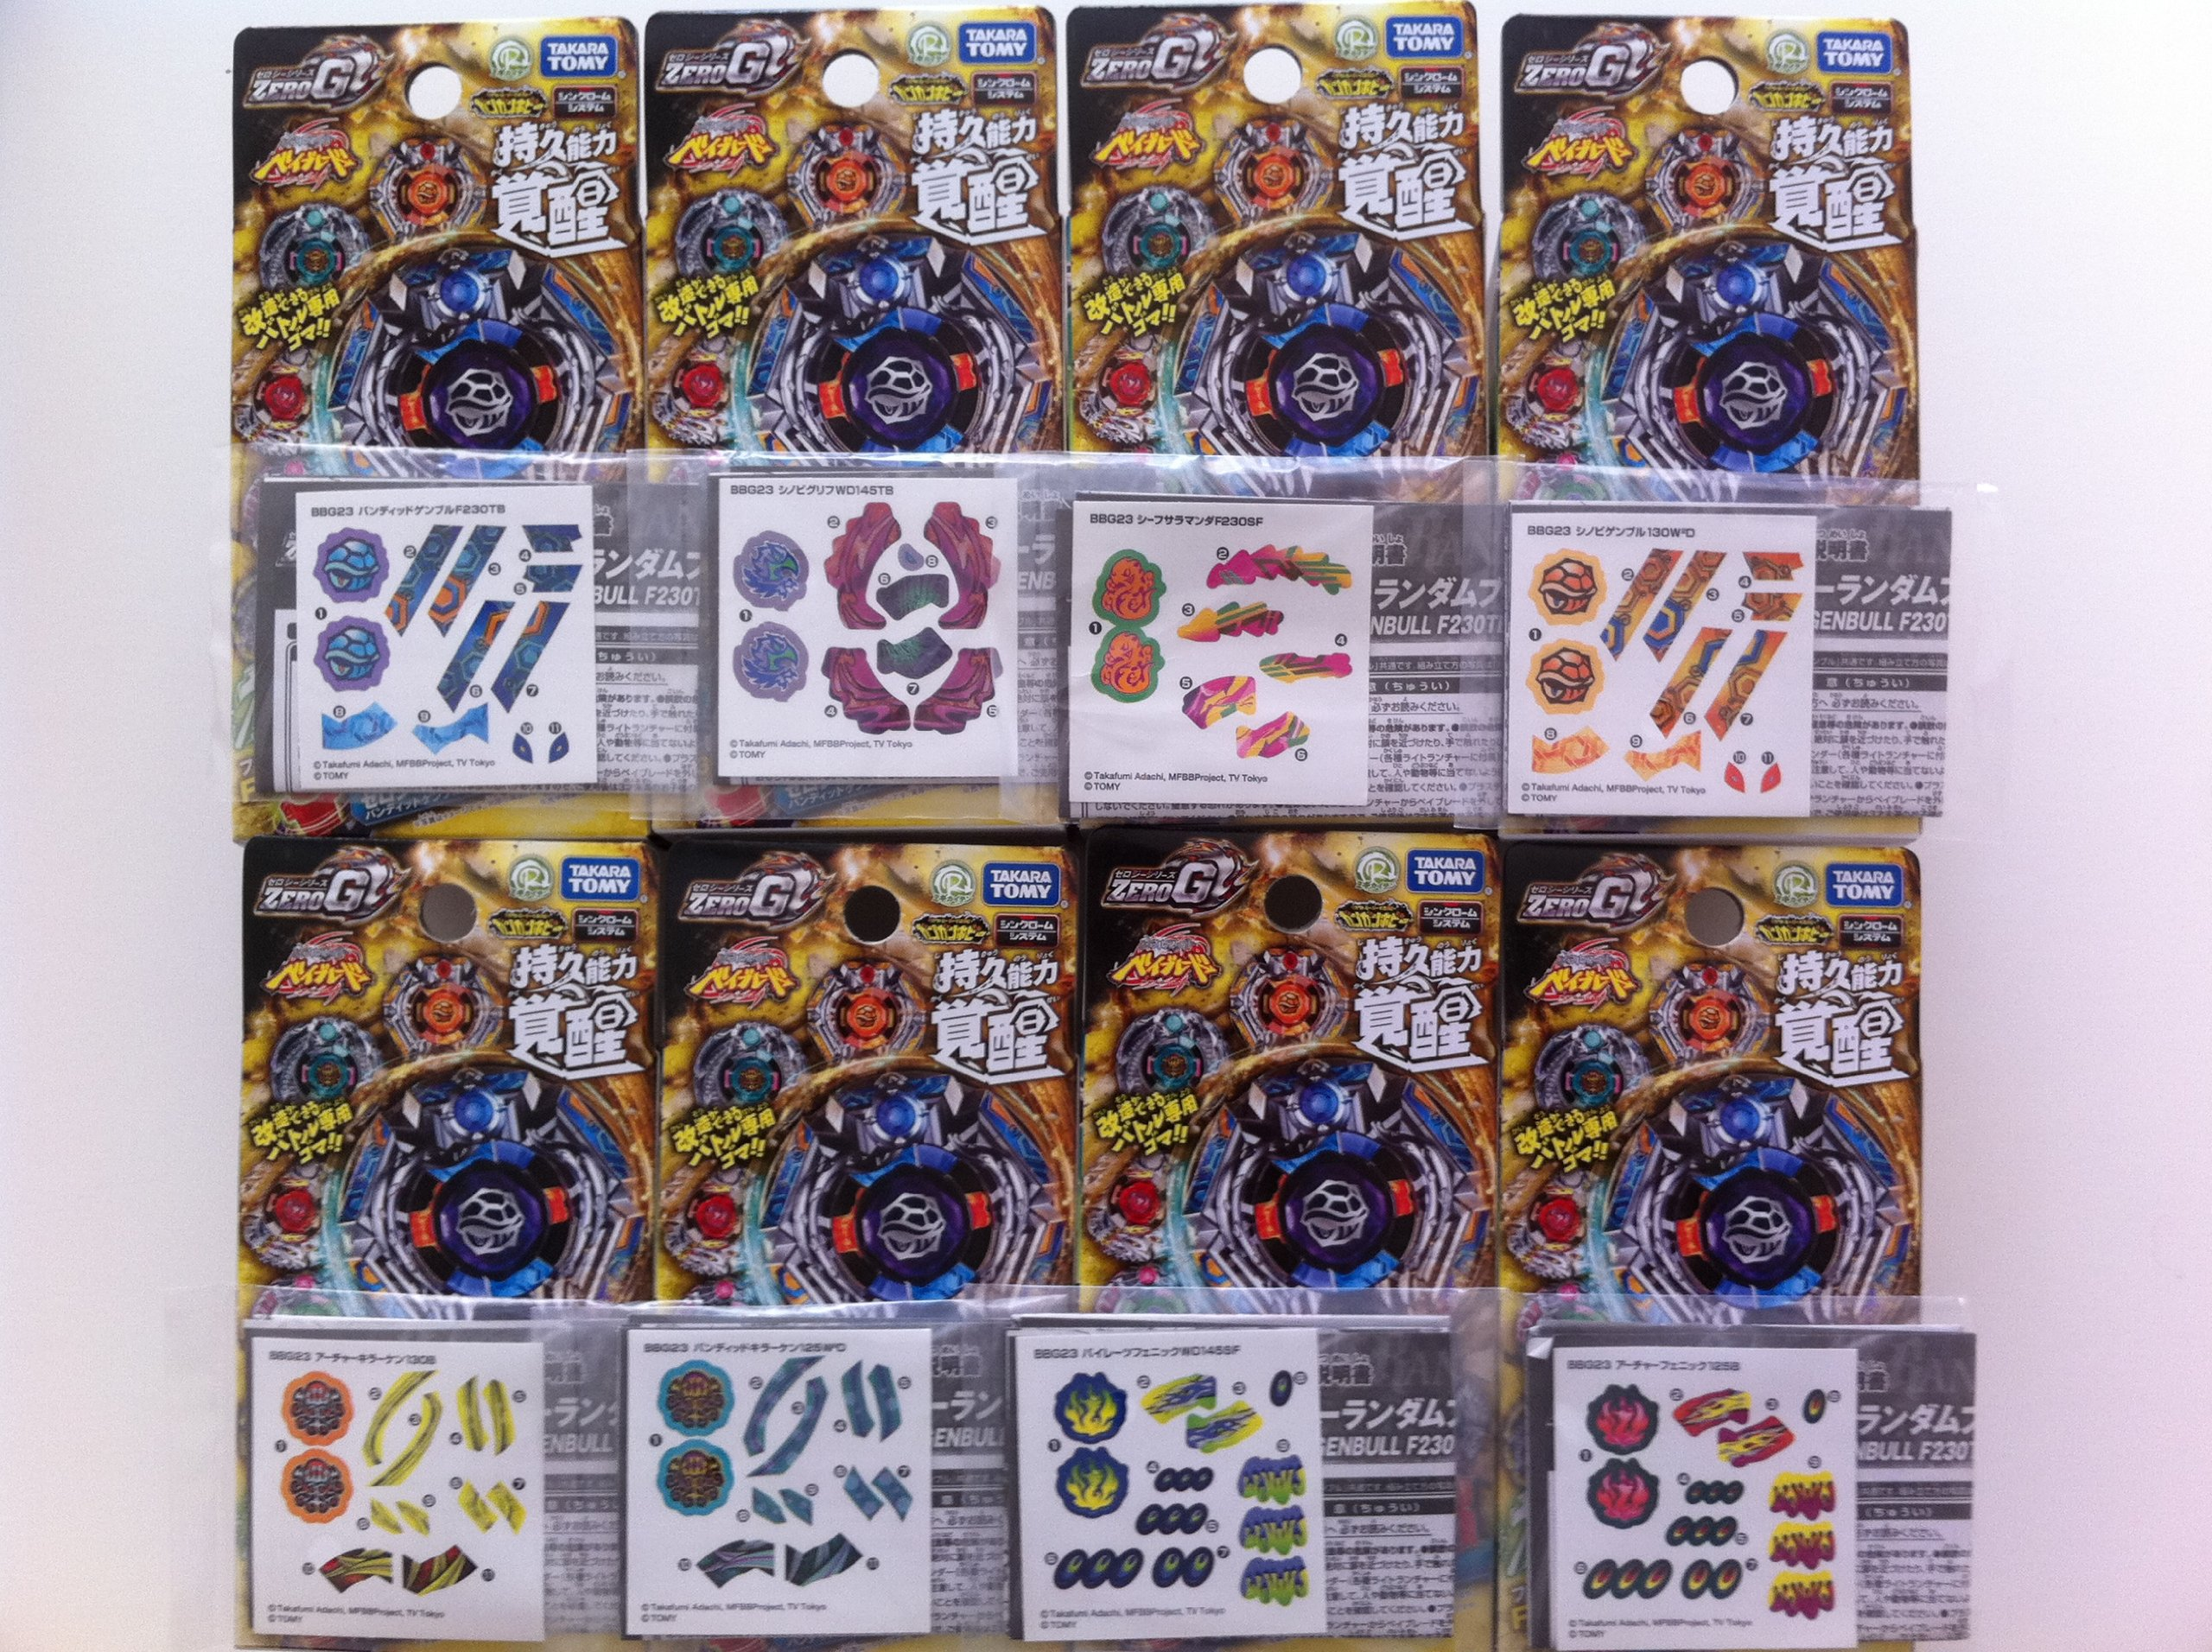 Takara Tomy Beyblade BBG-23 Zero-G Random Booster Vol. 3 Set of 8 (No Launcher)